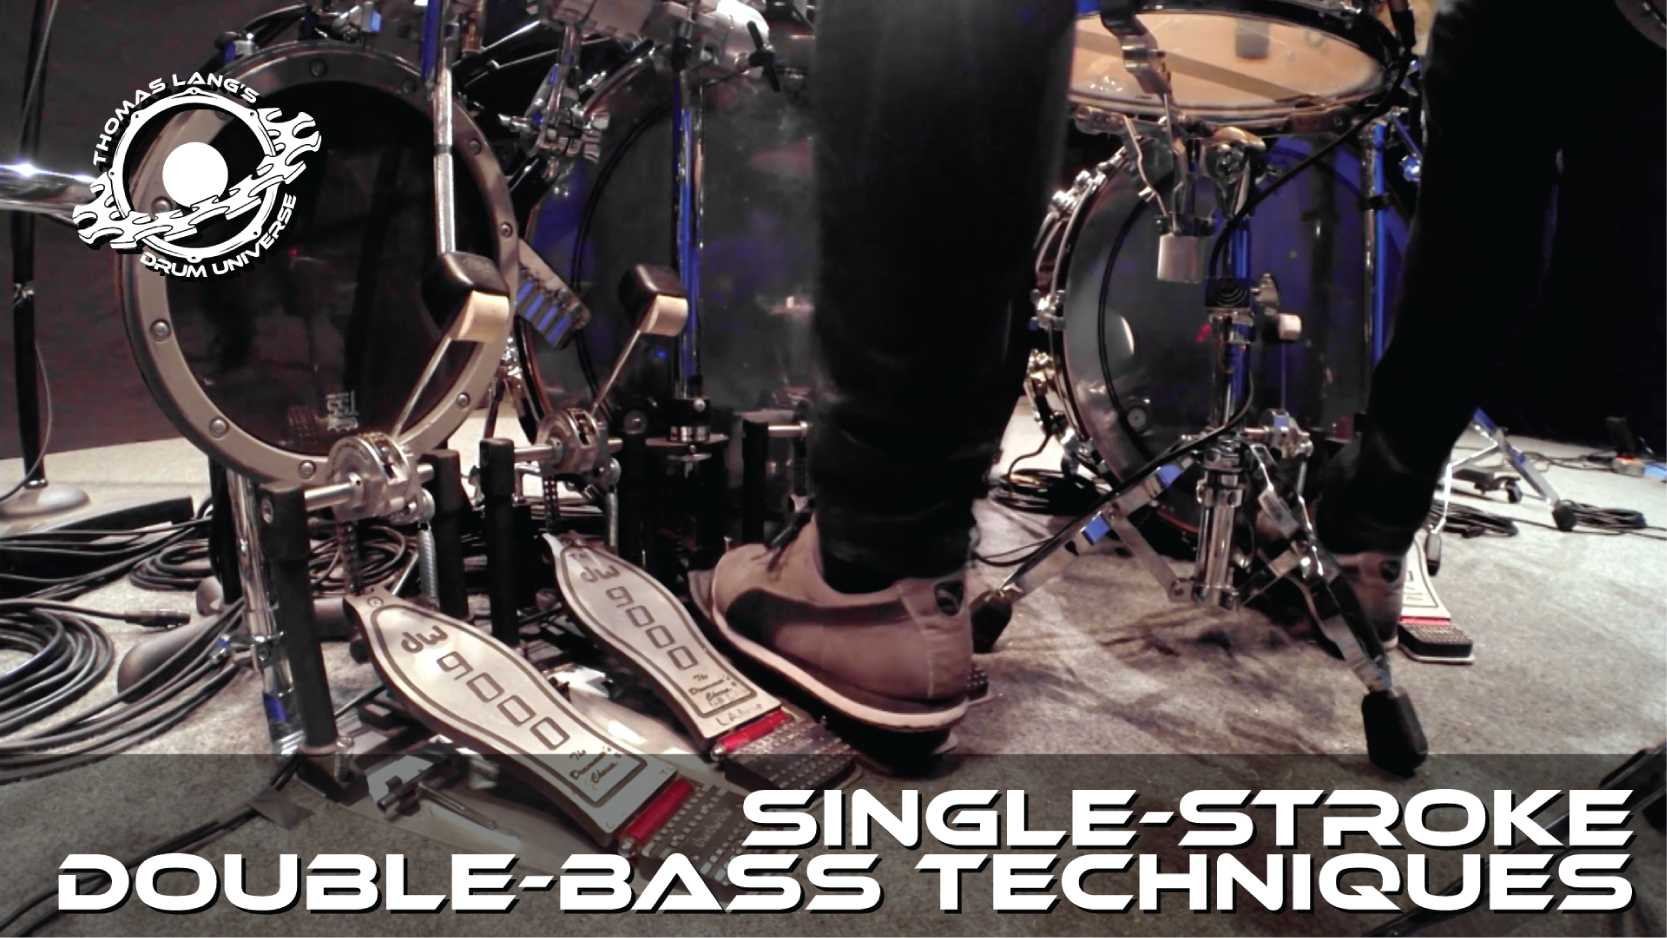 Single-Stroke Double-Bass Techniques